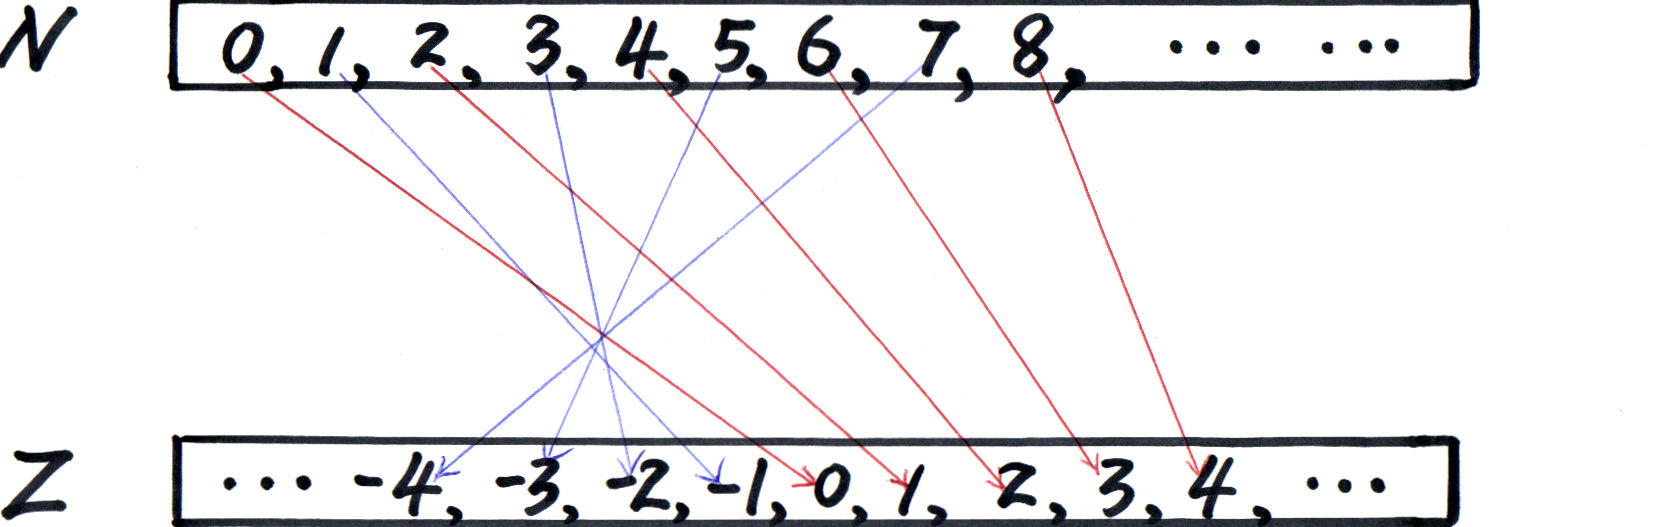 relationship between natural numbers and integers cardinality